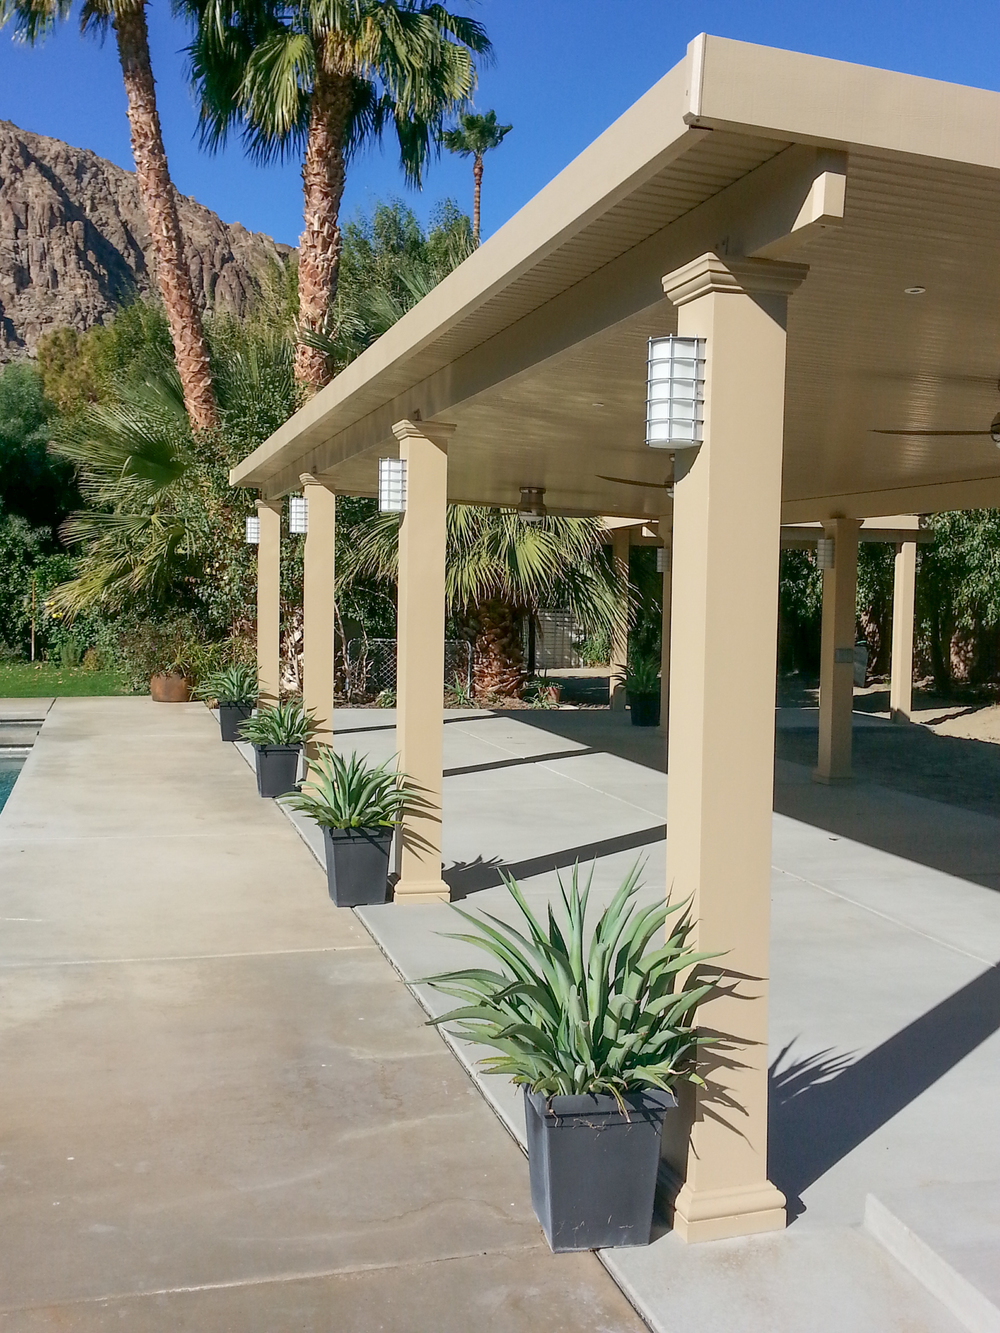 Patio Cover Designs| Patio Ideas | Valley Patios | Palm ... on Patio Covers Ideas  id=35235